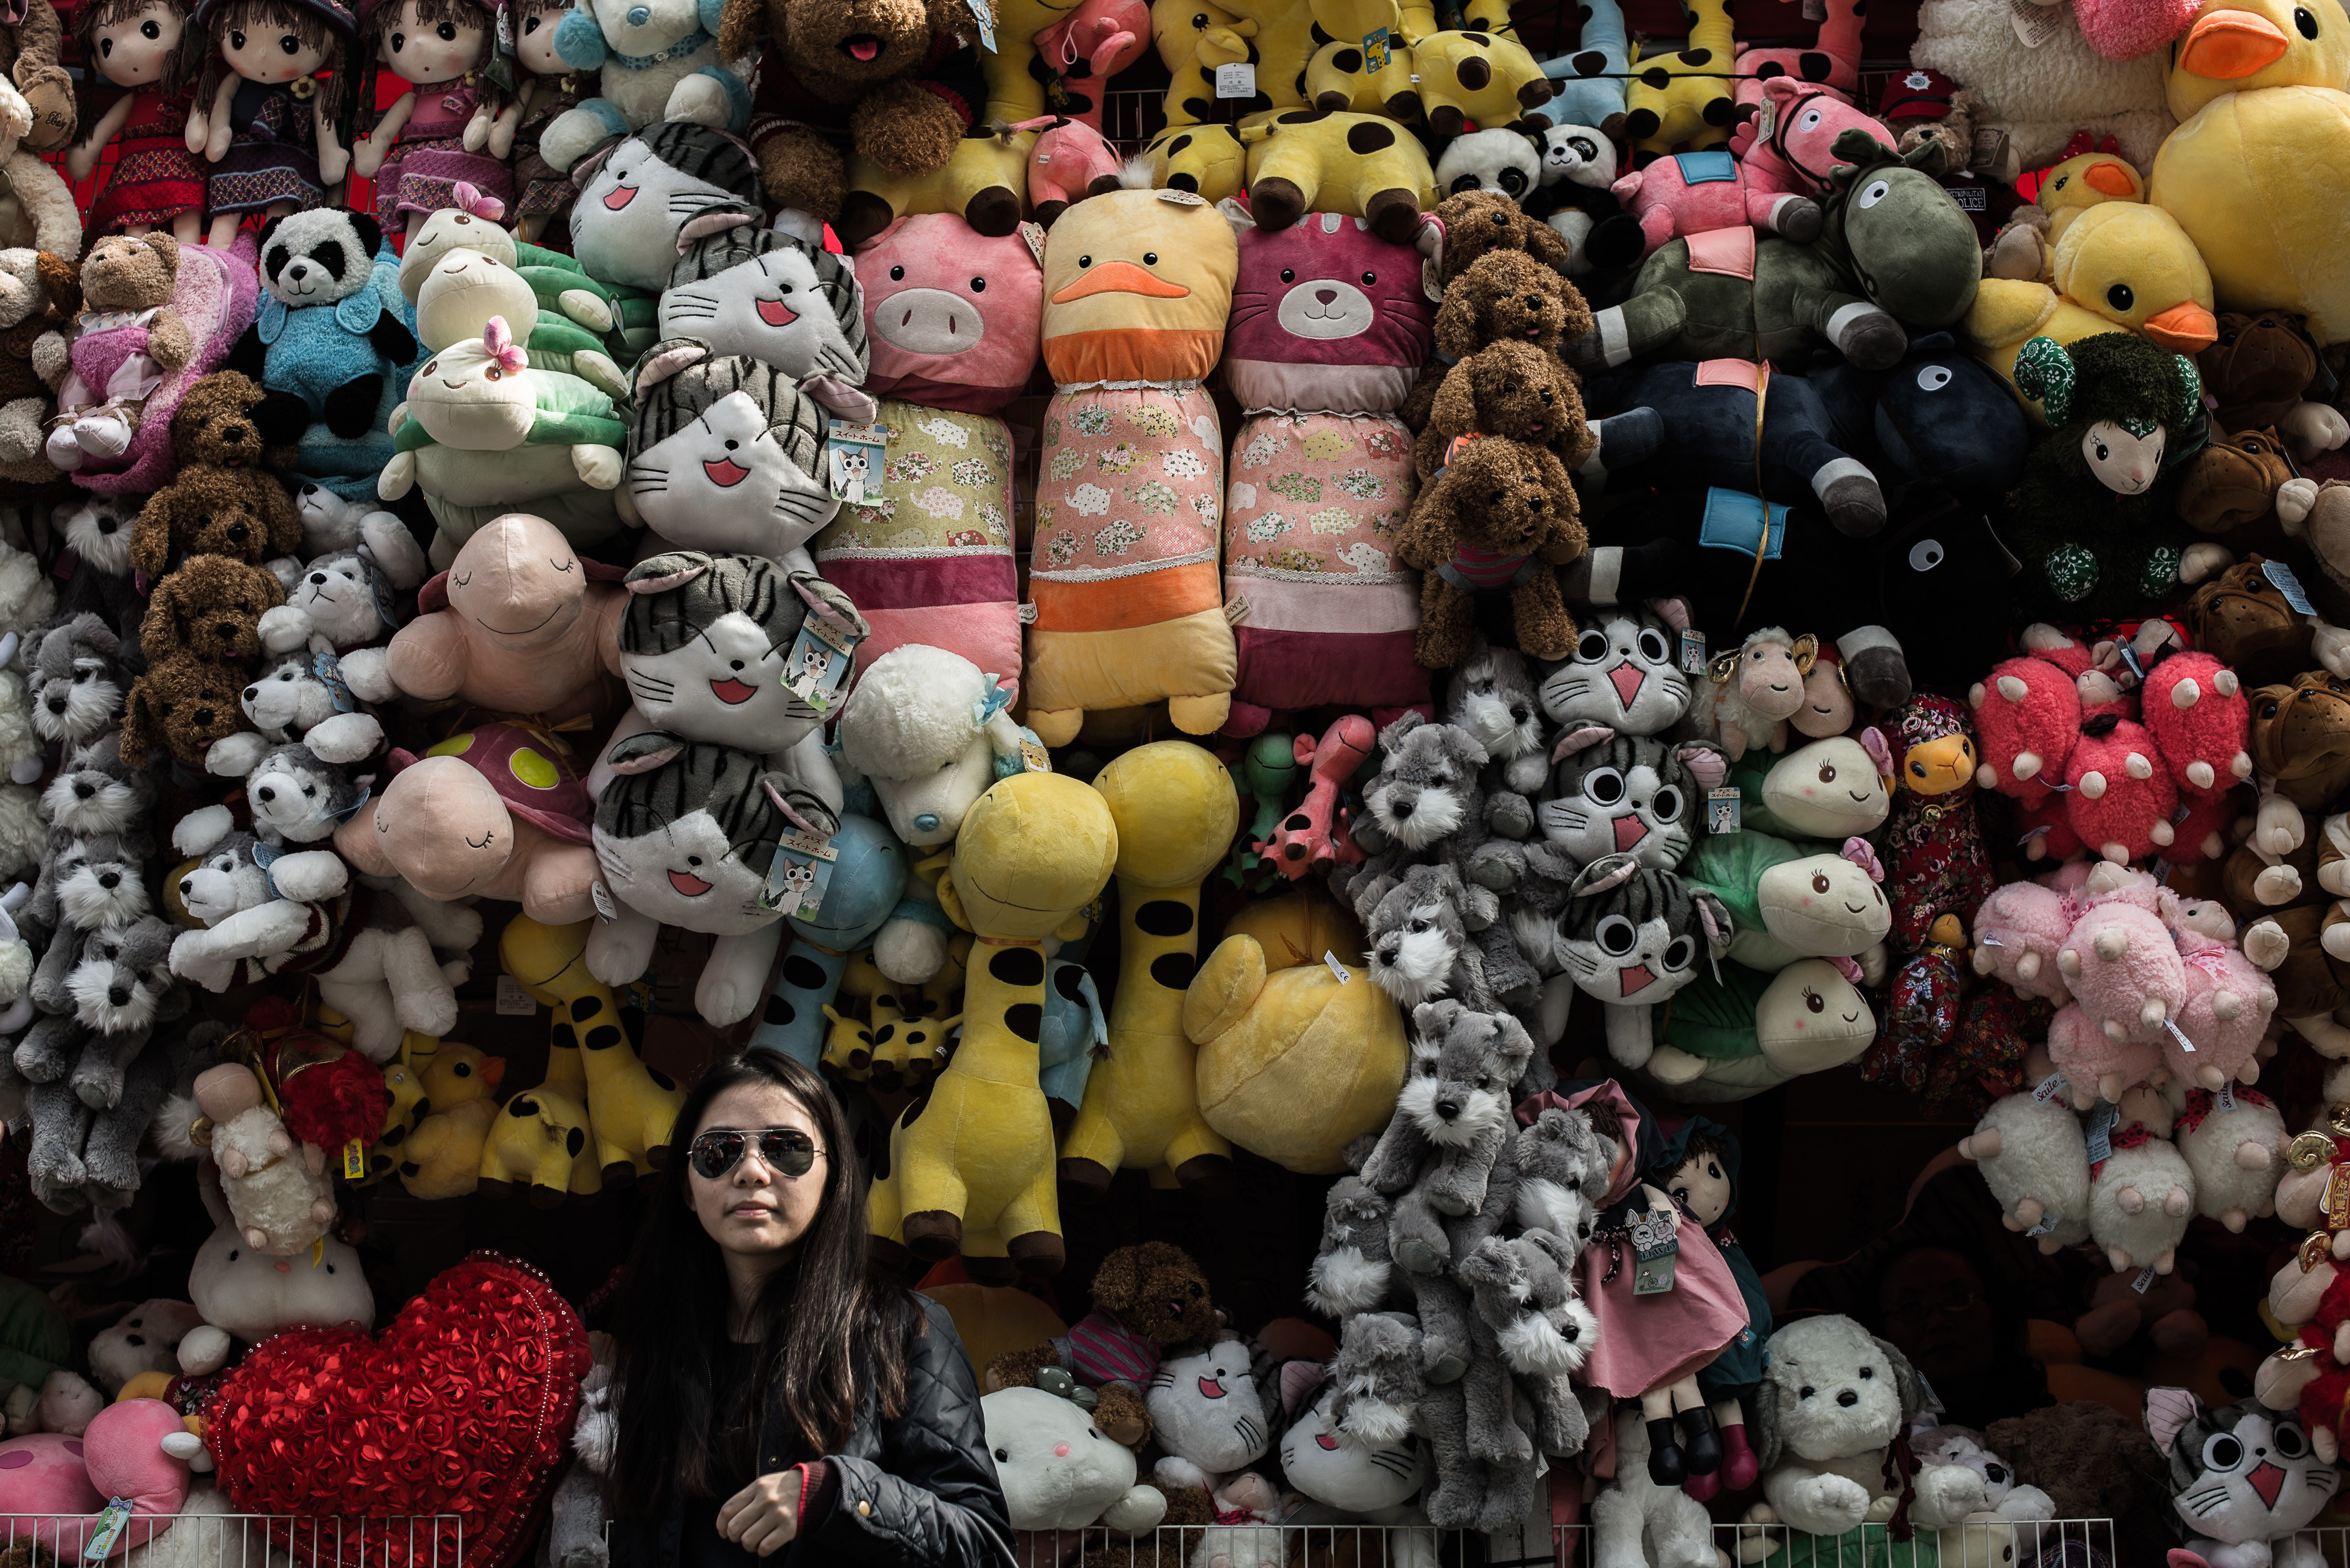 If You Think the Chinese Economy Is Crashing, The New China Beige Book Report Will Change Your Mind